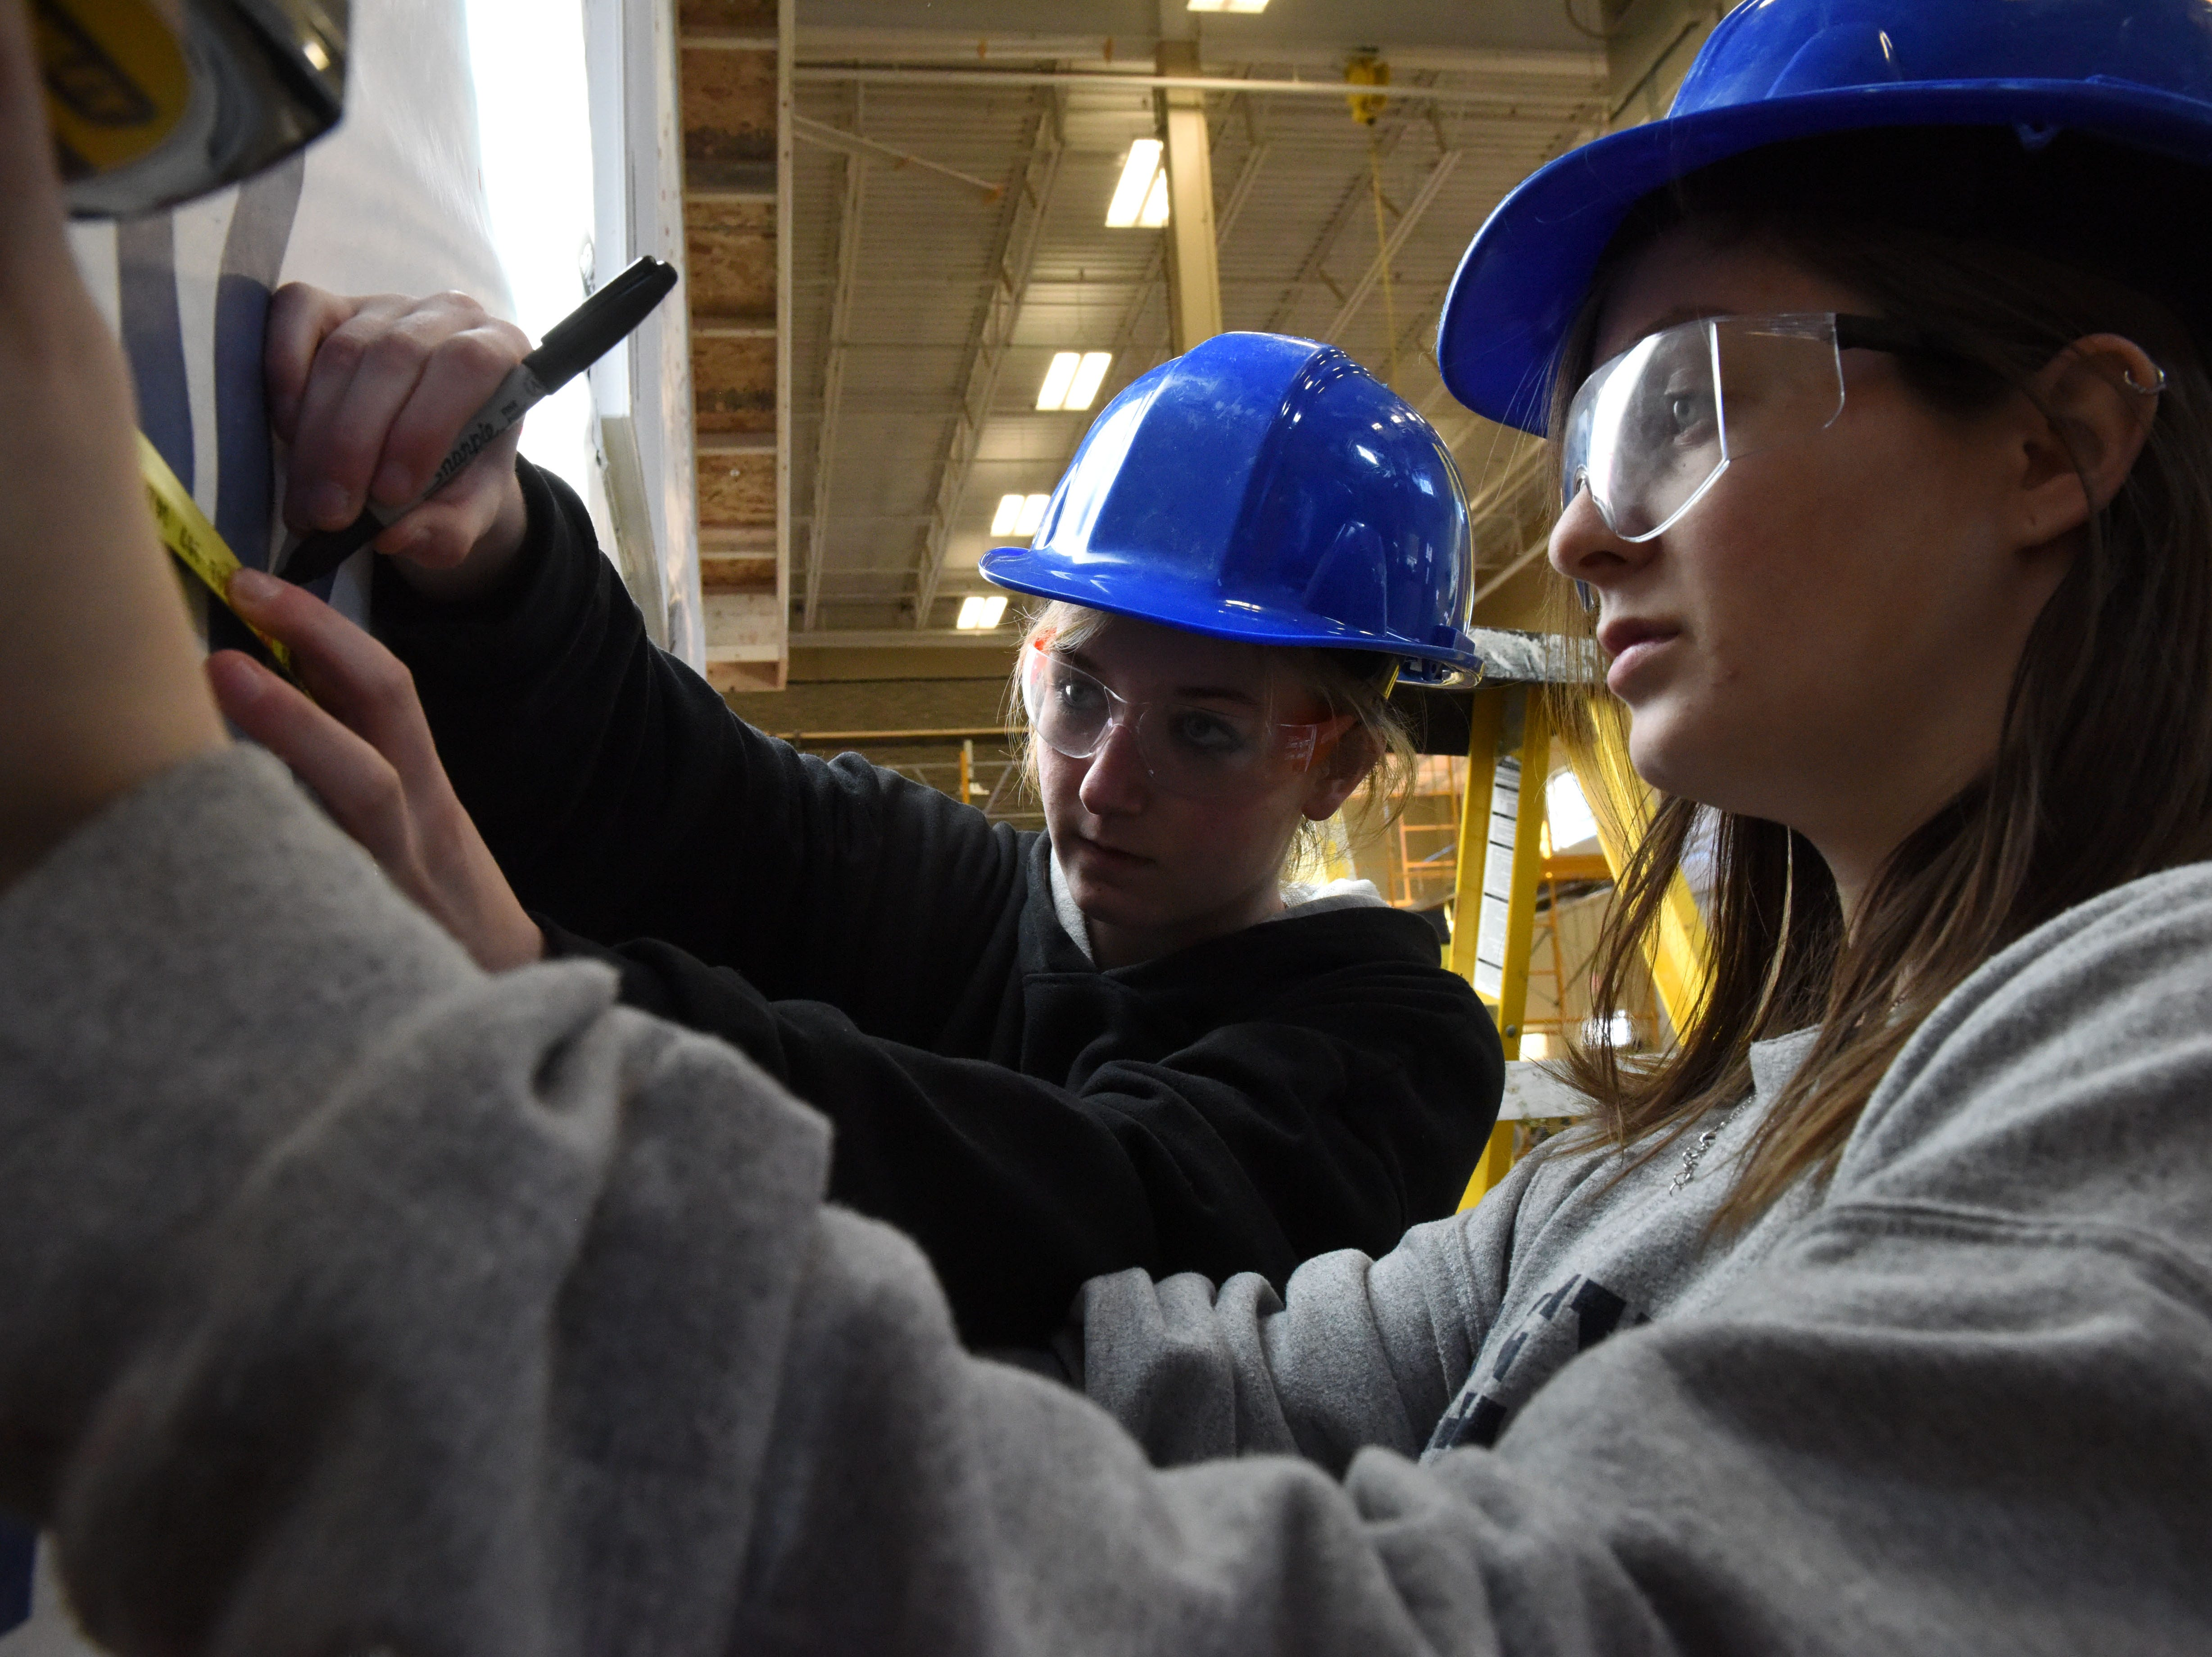 Heidi Griebel and Josie Wahl participate in carpentry class at Career and Technical Education Academy, Monday, Jan. 7, 2019 in Sioux Falls, S.D.